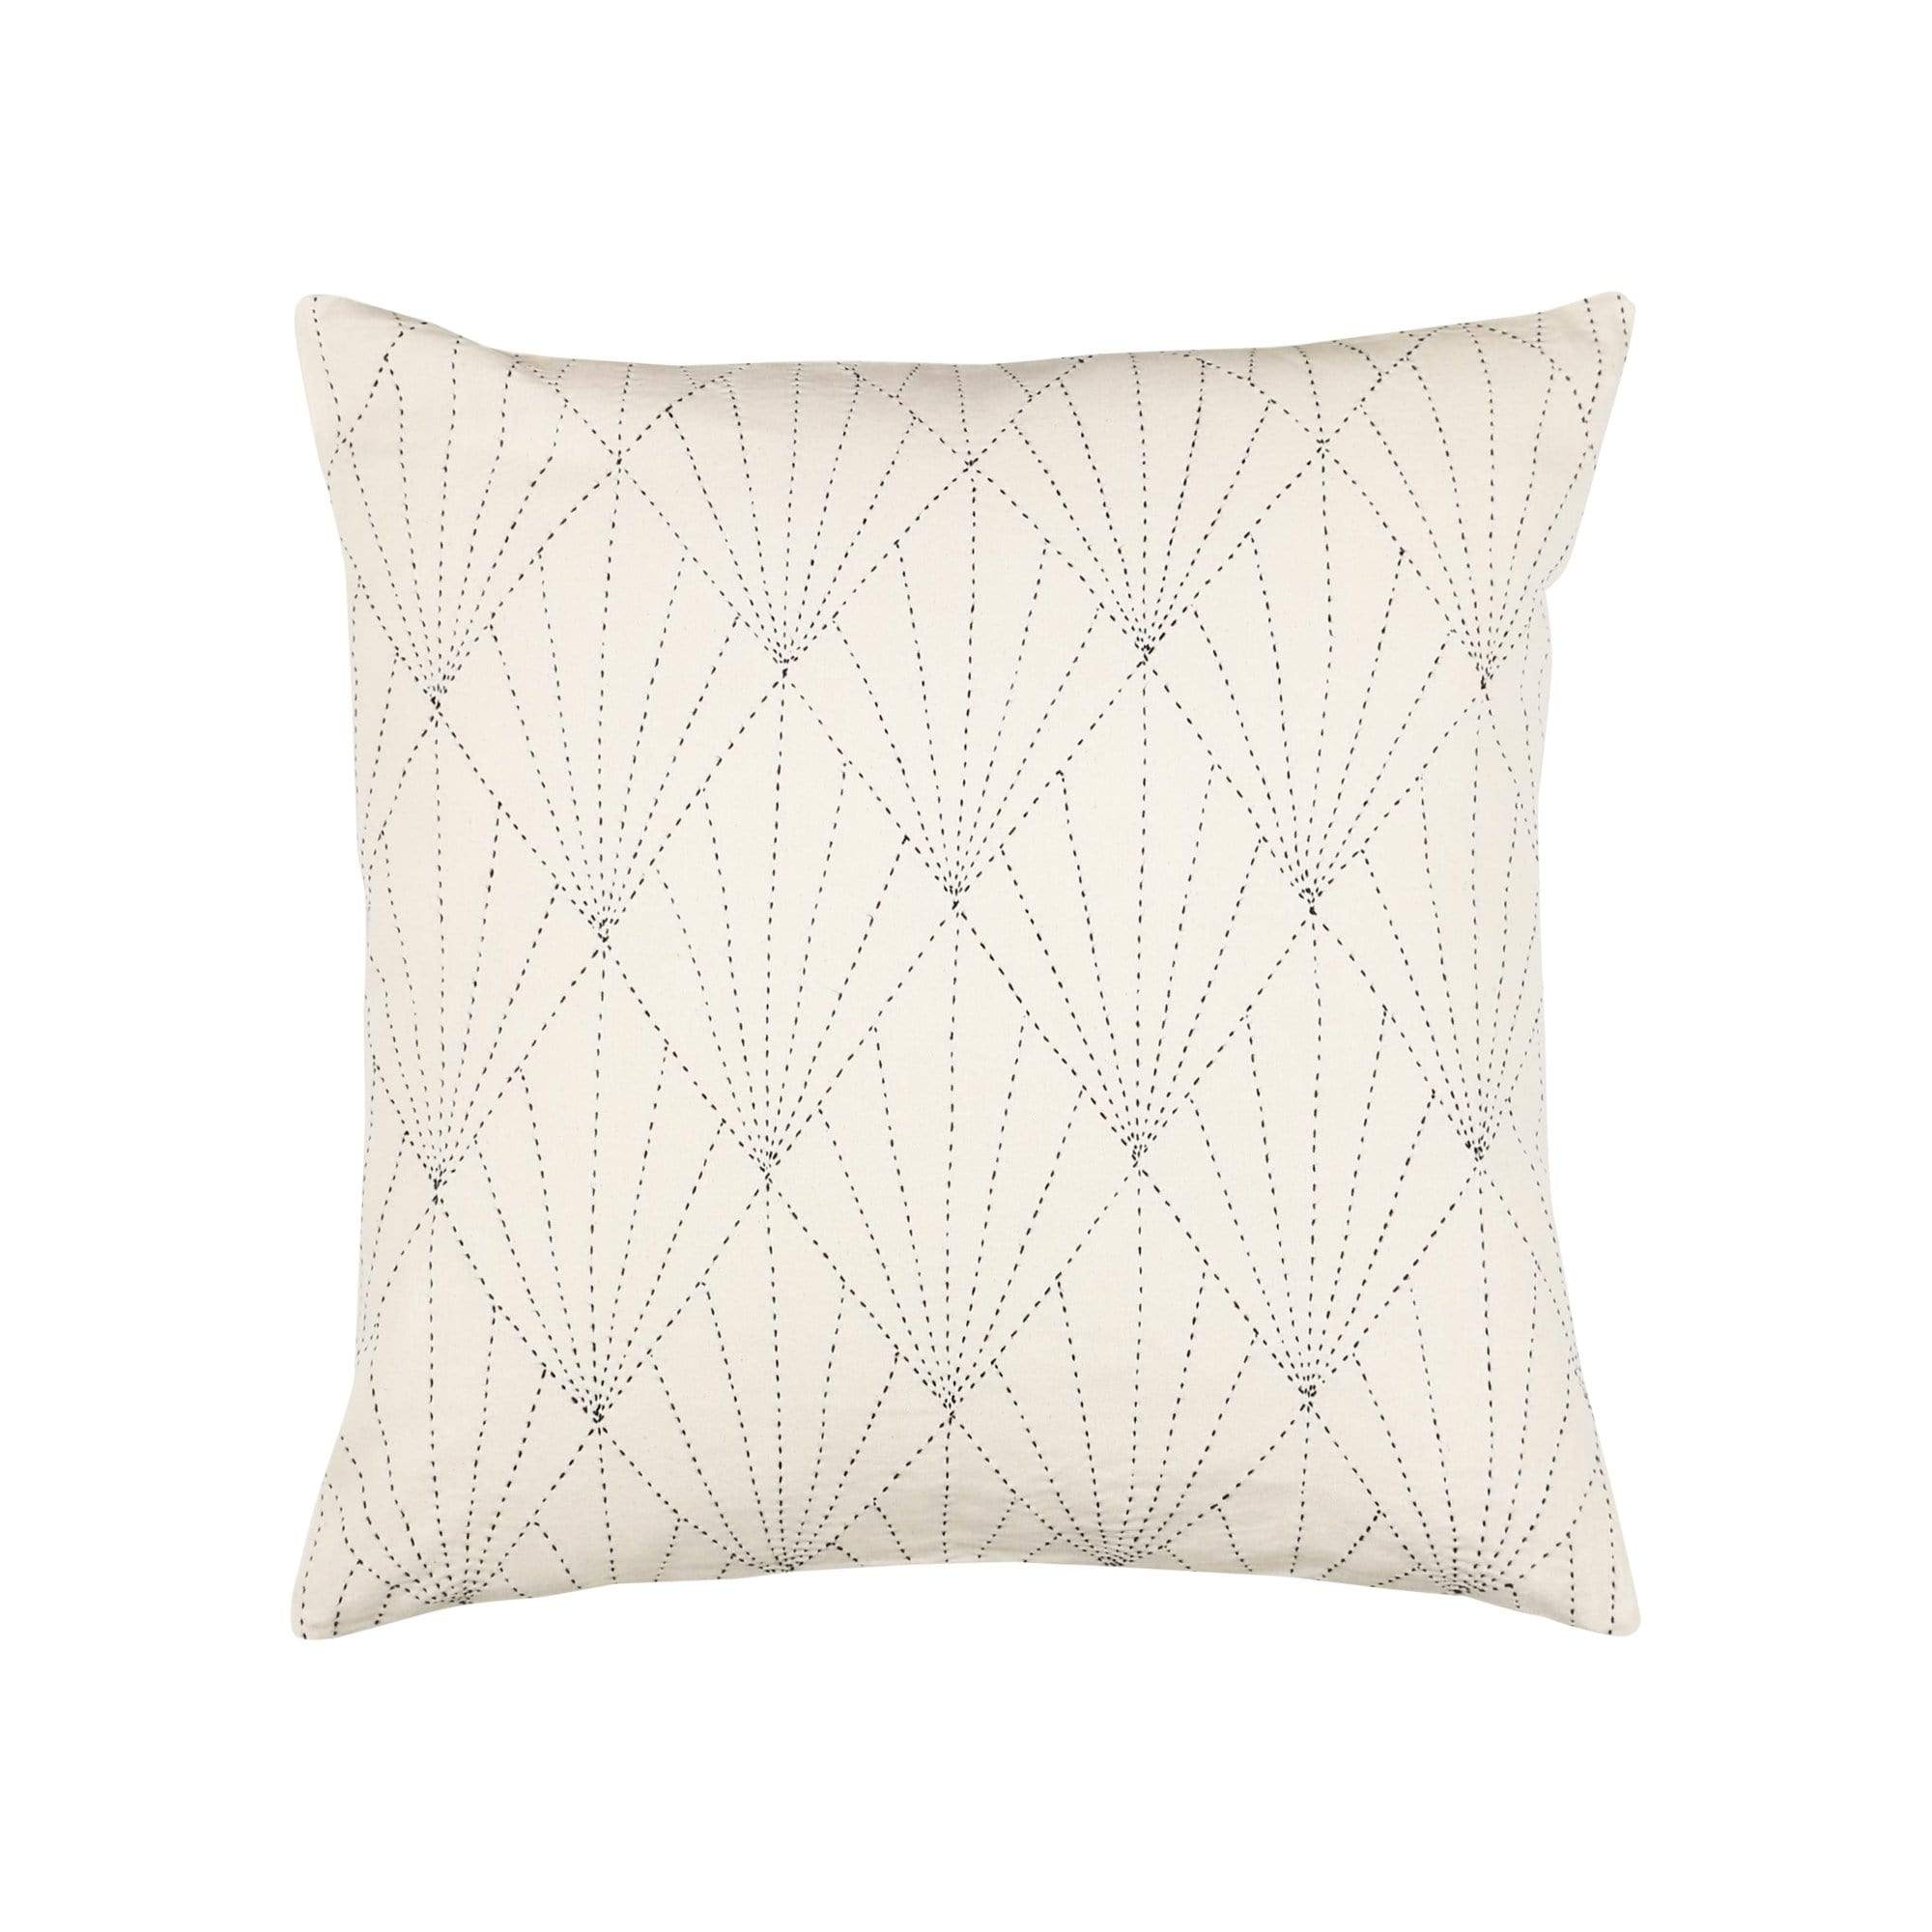 Anchal Project Cushions + Throws Bone Array Throw Pillow